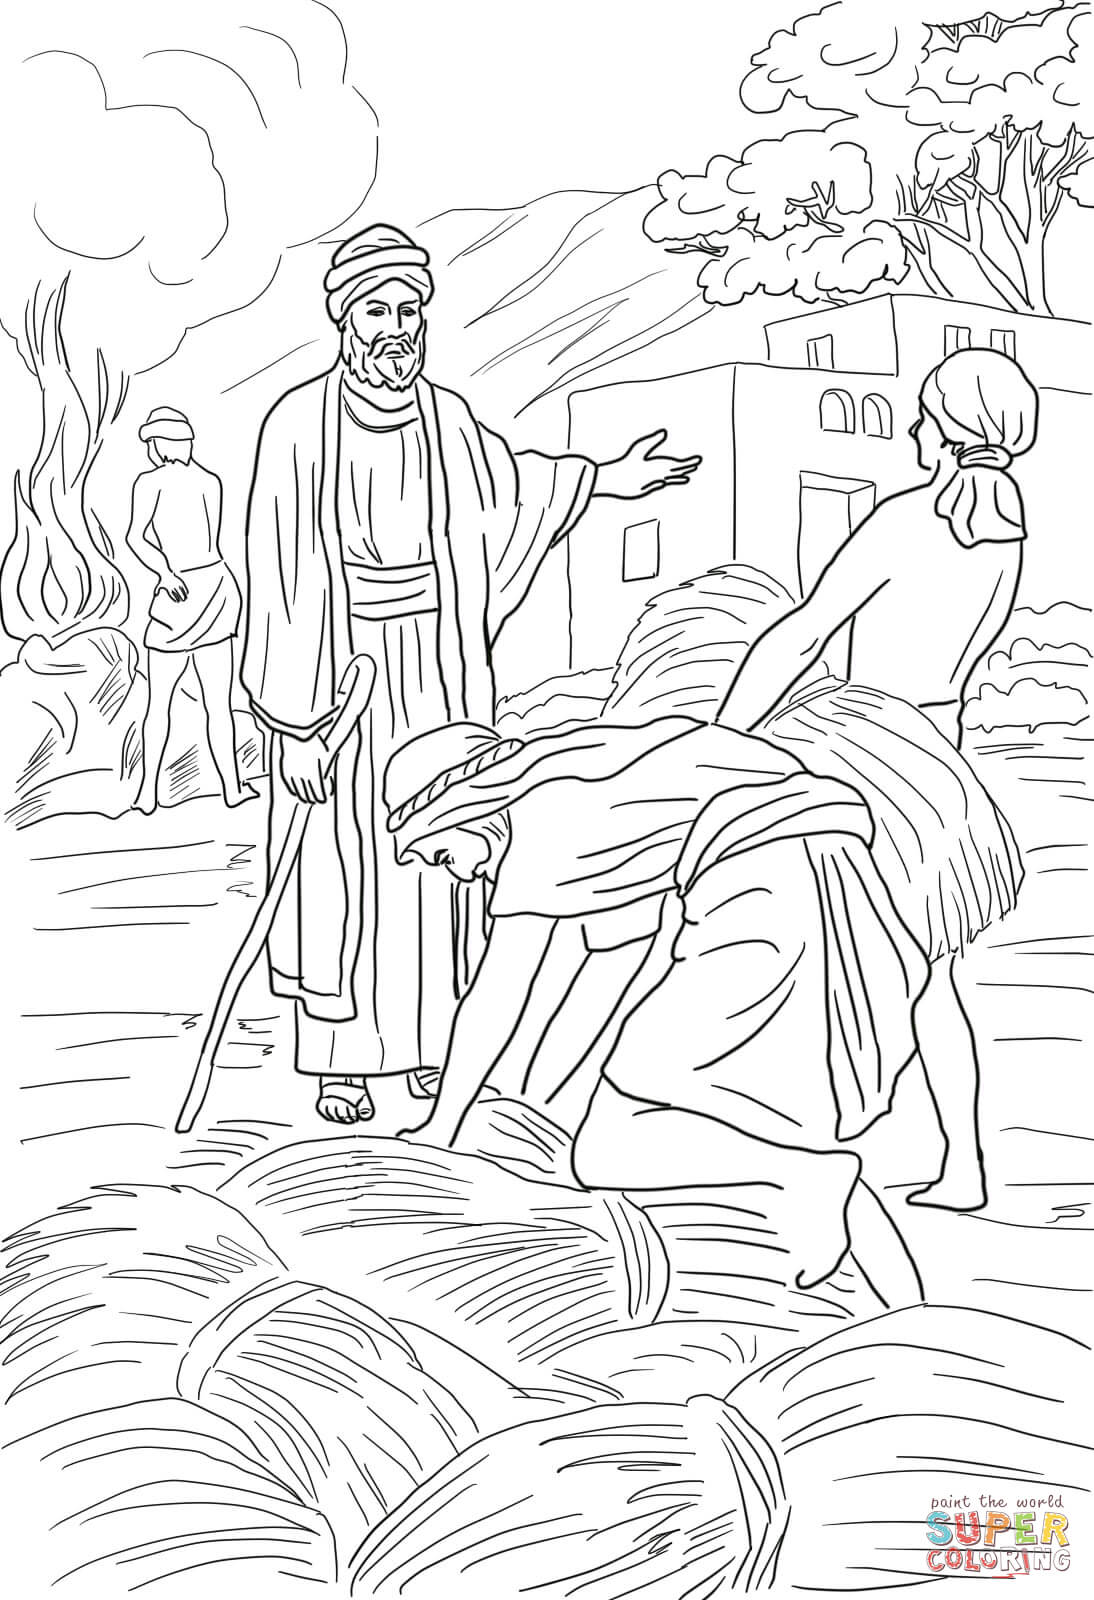 Parable Of The Wheat And Weeds Coloring Page